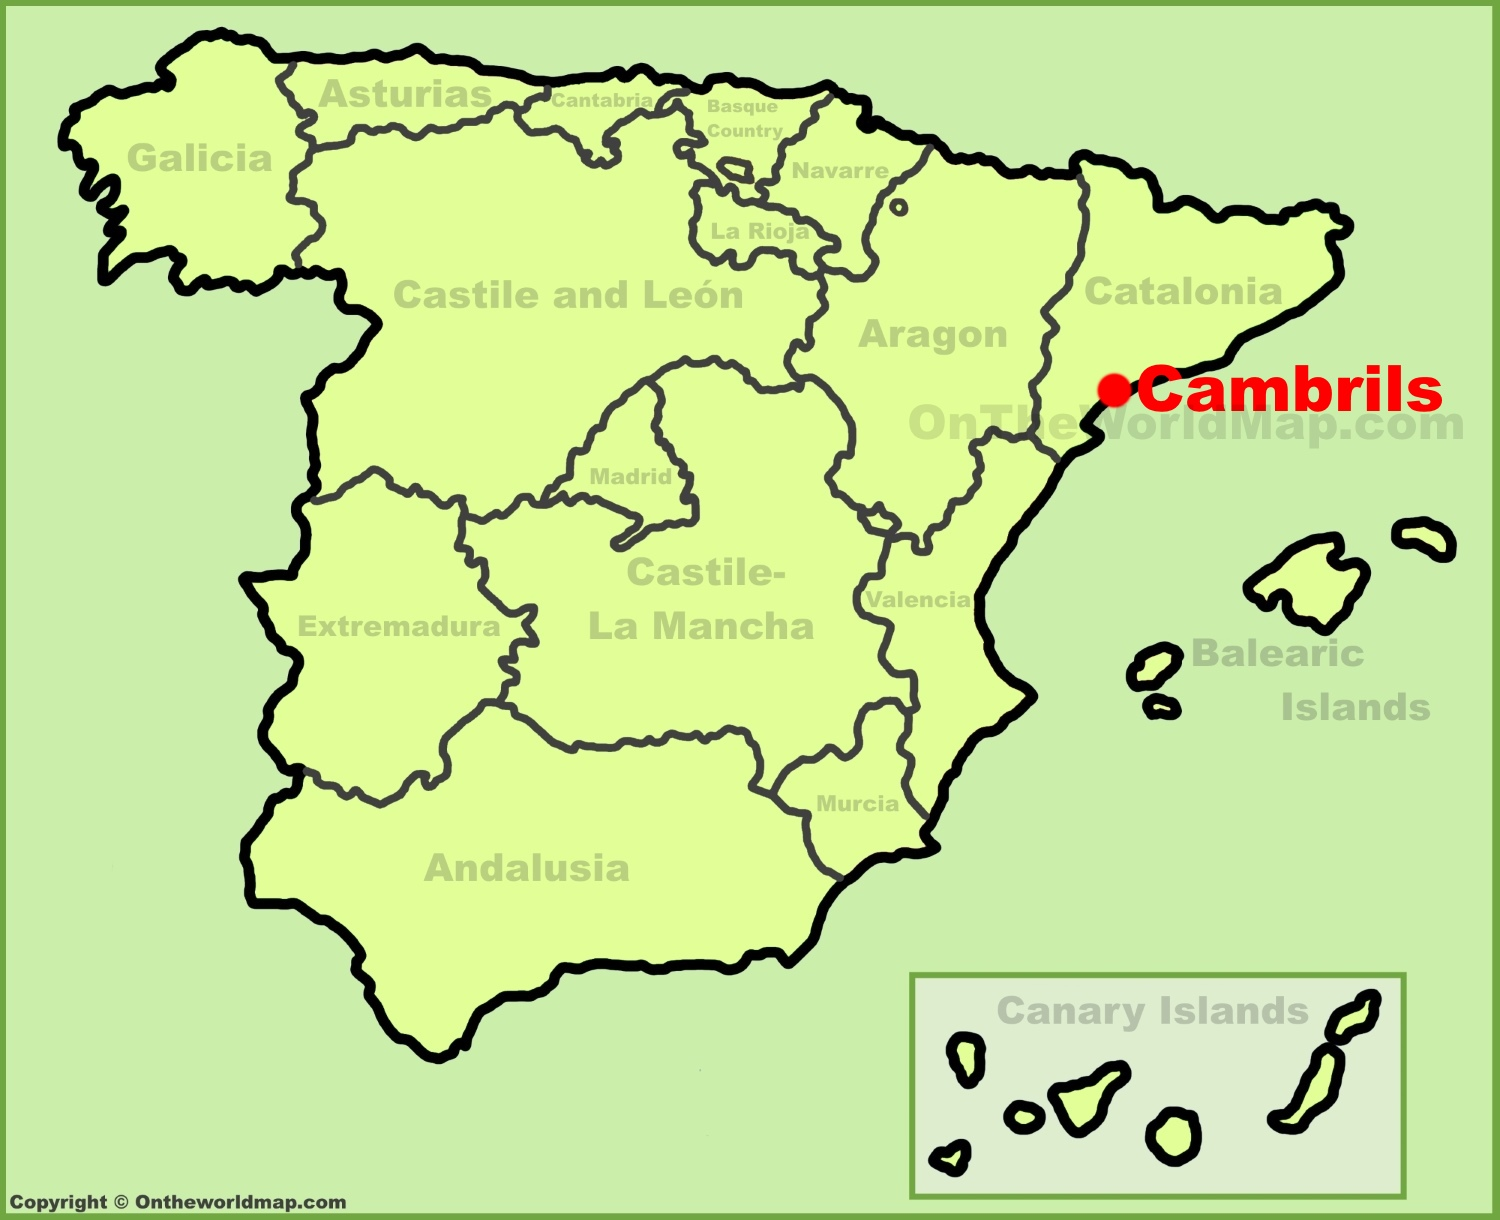 Cambrils location on the Spain map